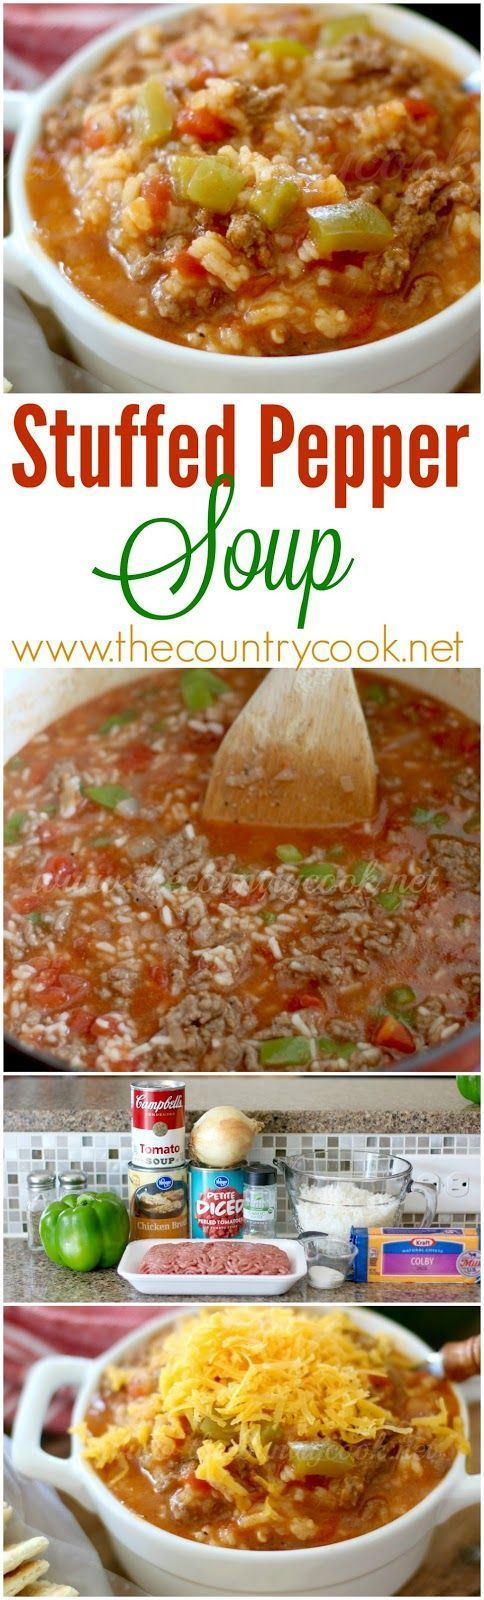 Stuffed Pepper Soup recipe from The Country Cook. Full of rice, ground beef…